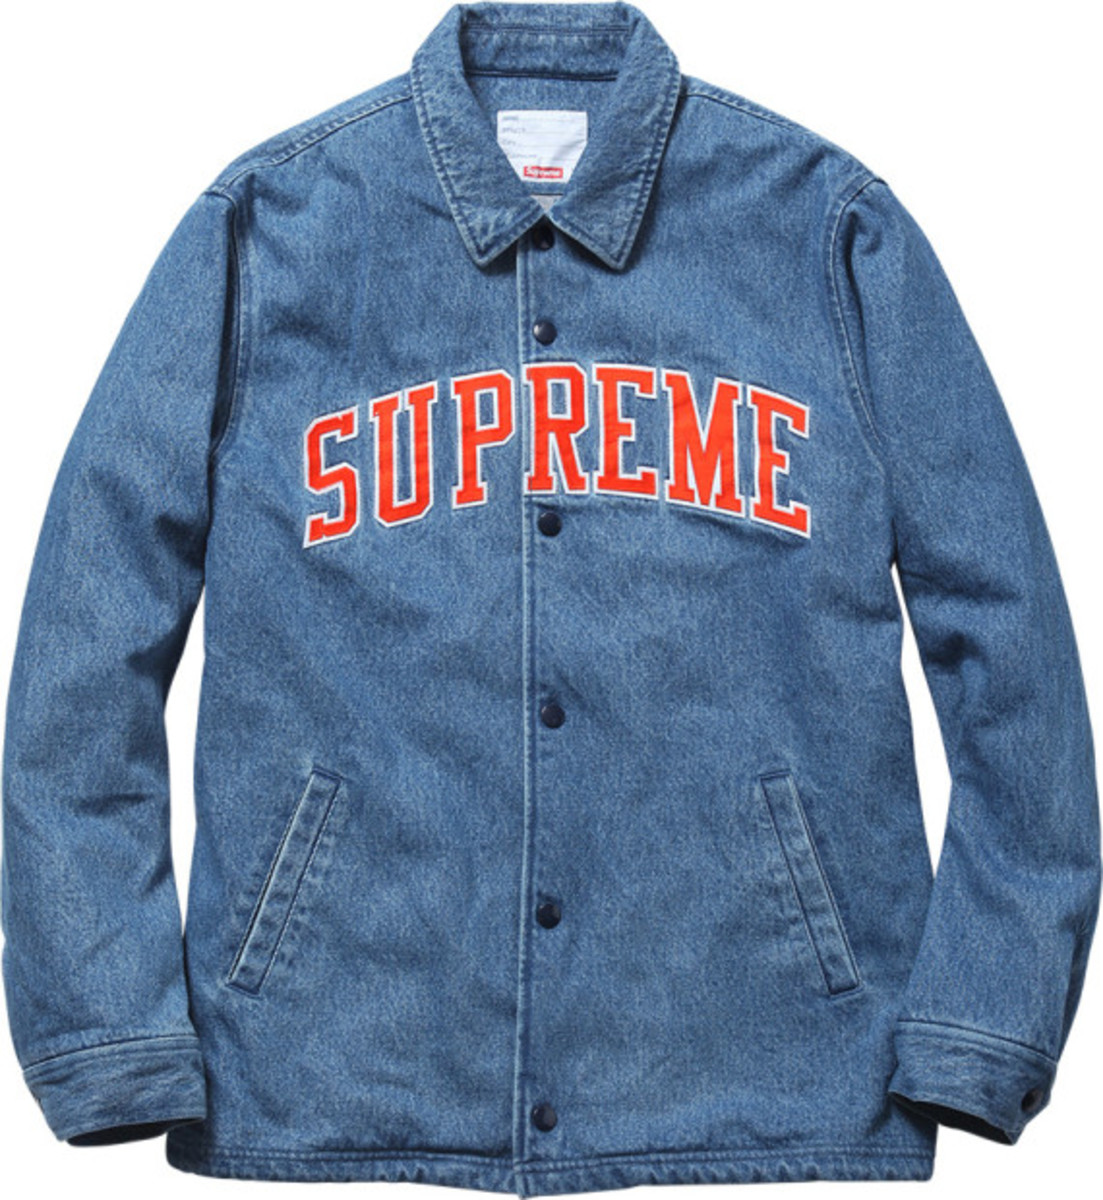 supreme-fall-winter-2013-outerwear-collection-50